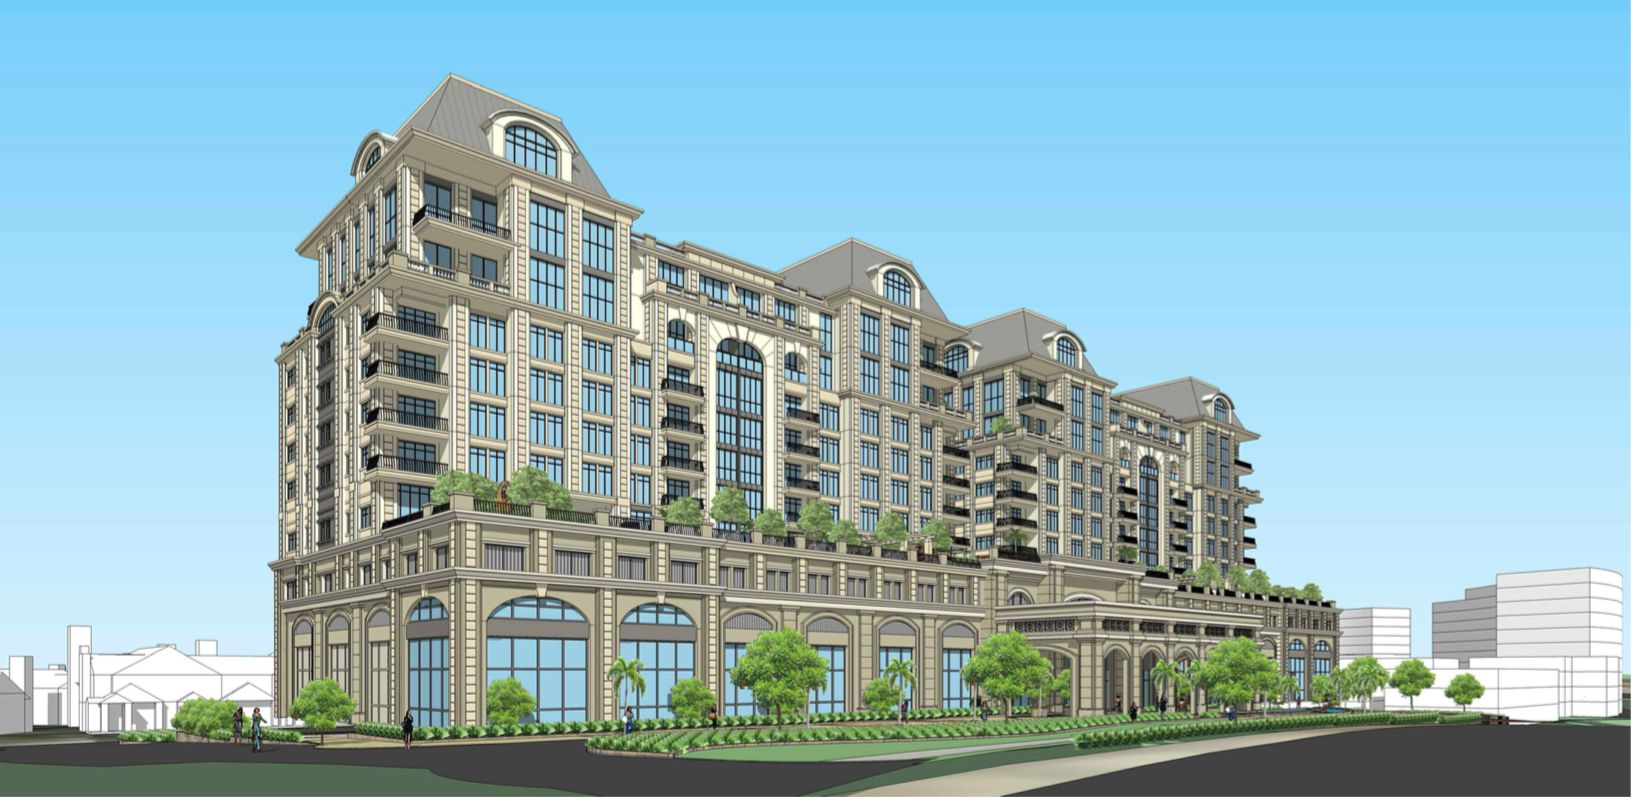 A rendering shows a 10-story condominium building that's part of the $700 million Gate development.